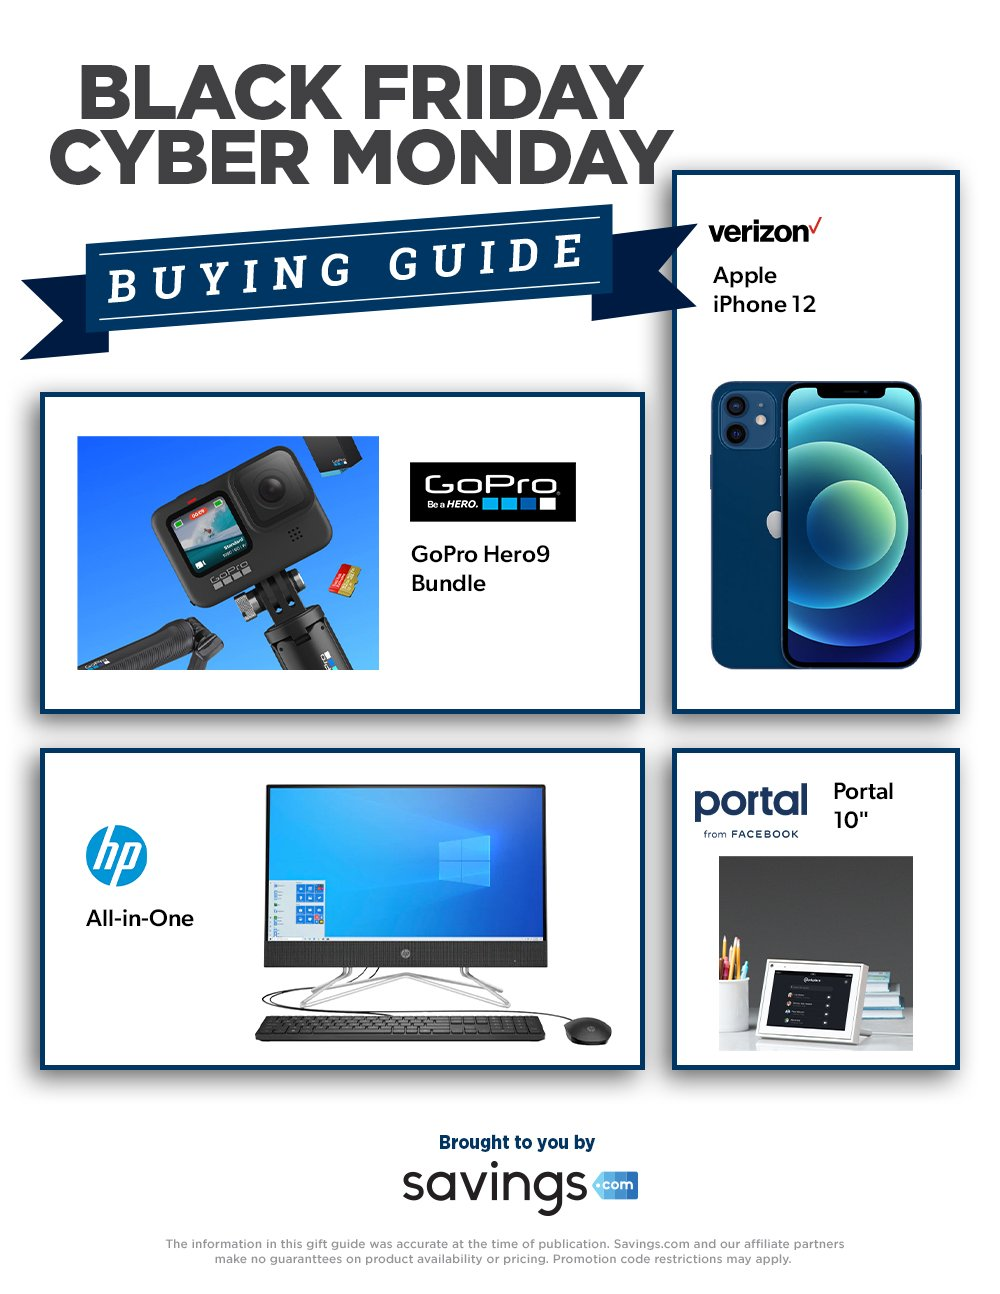 Black Friday and Cyber Monday Buying Guide 2020 Page 7